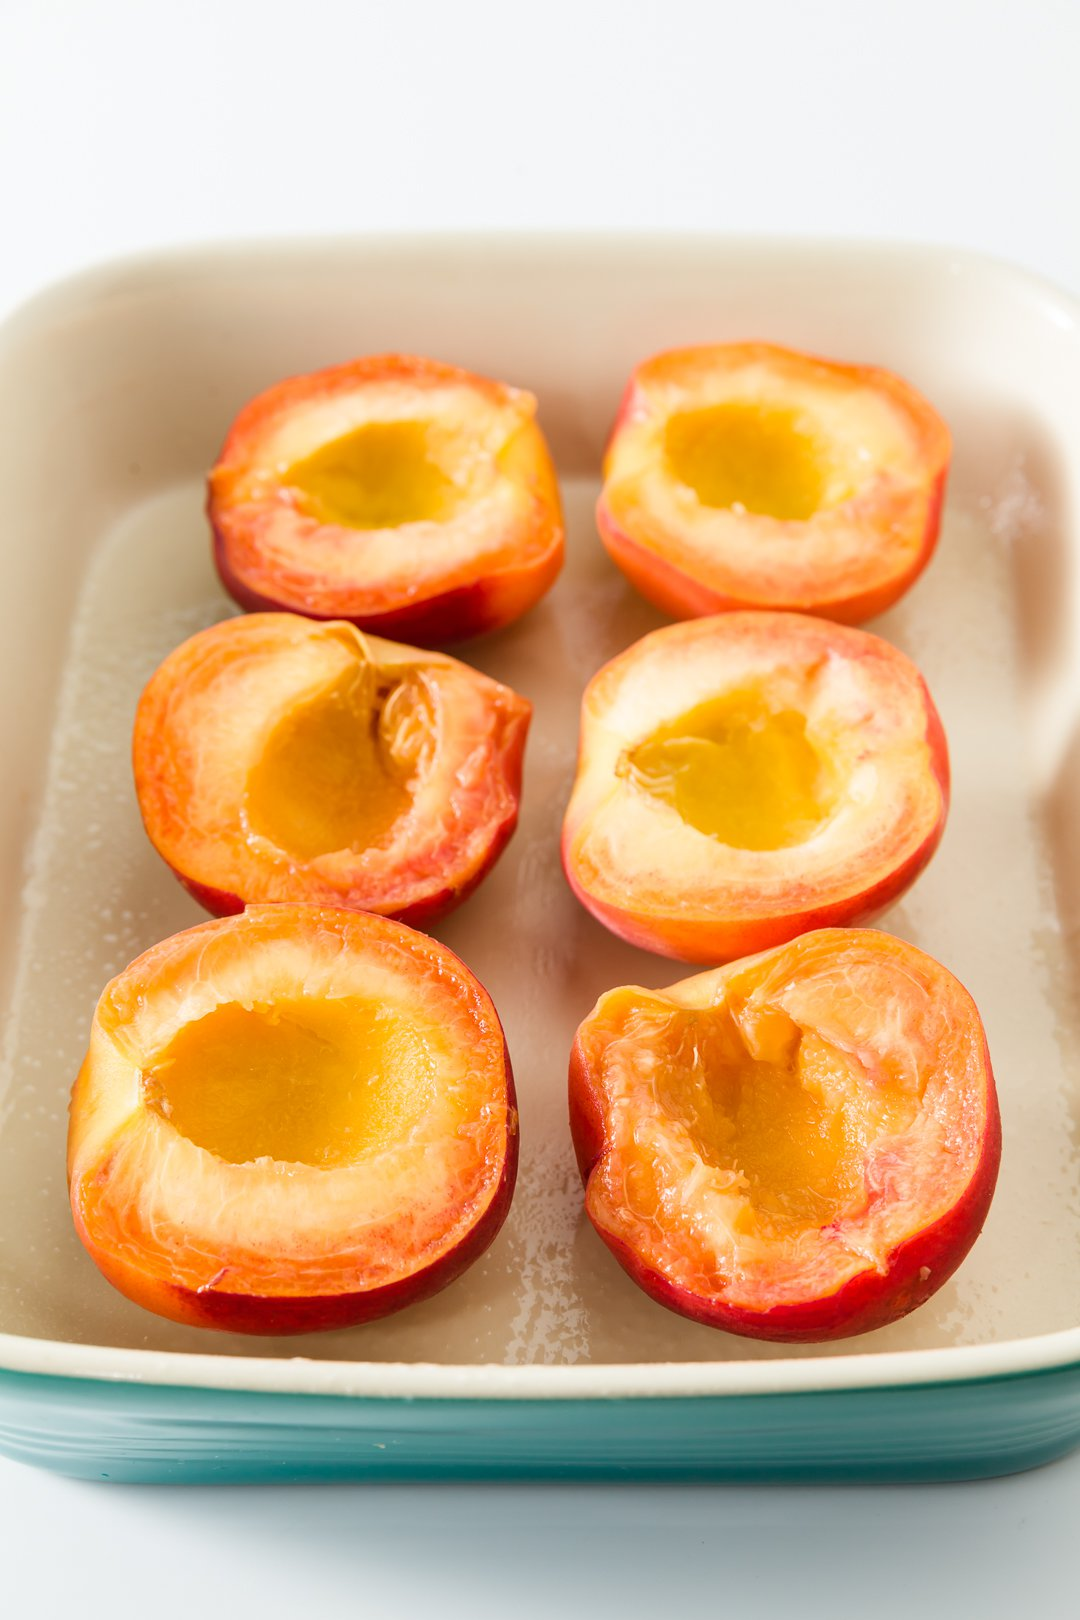 Sliced peaches in a baking dish